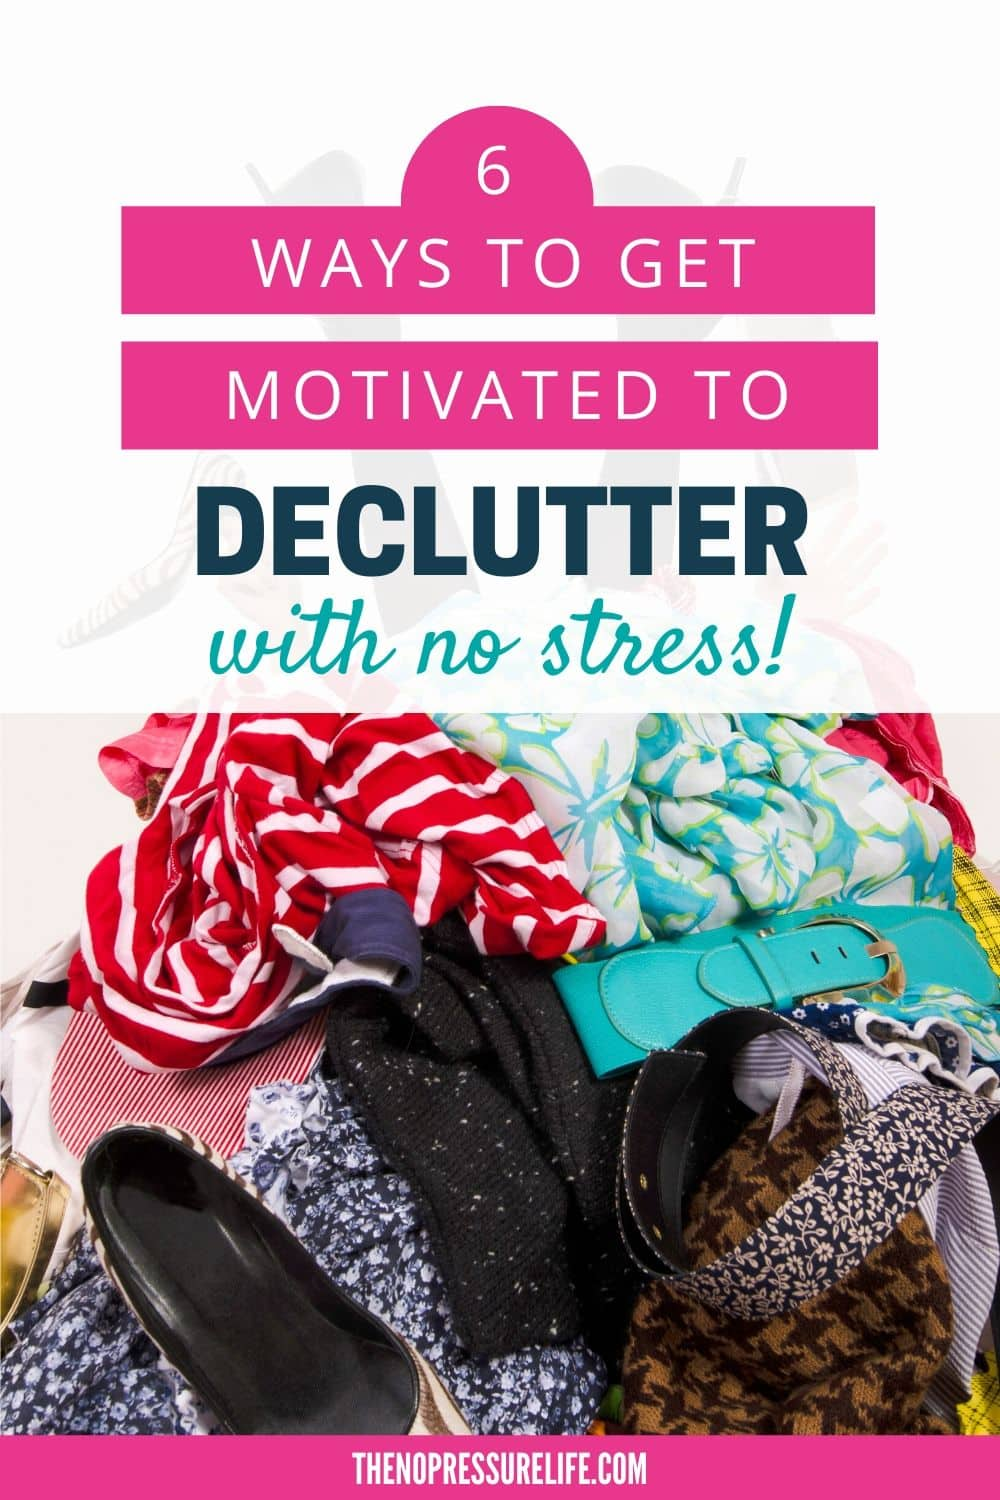 Pile of clothes with text overlay: 6 ways to get motivated to declutter with no stress